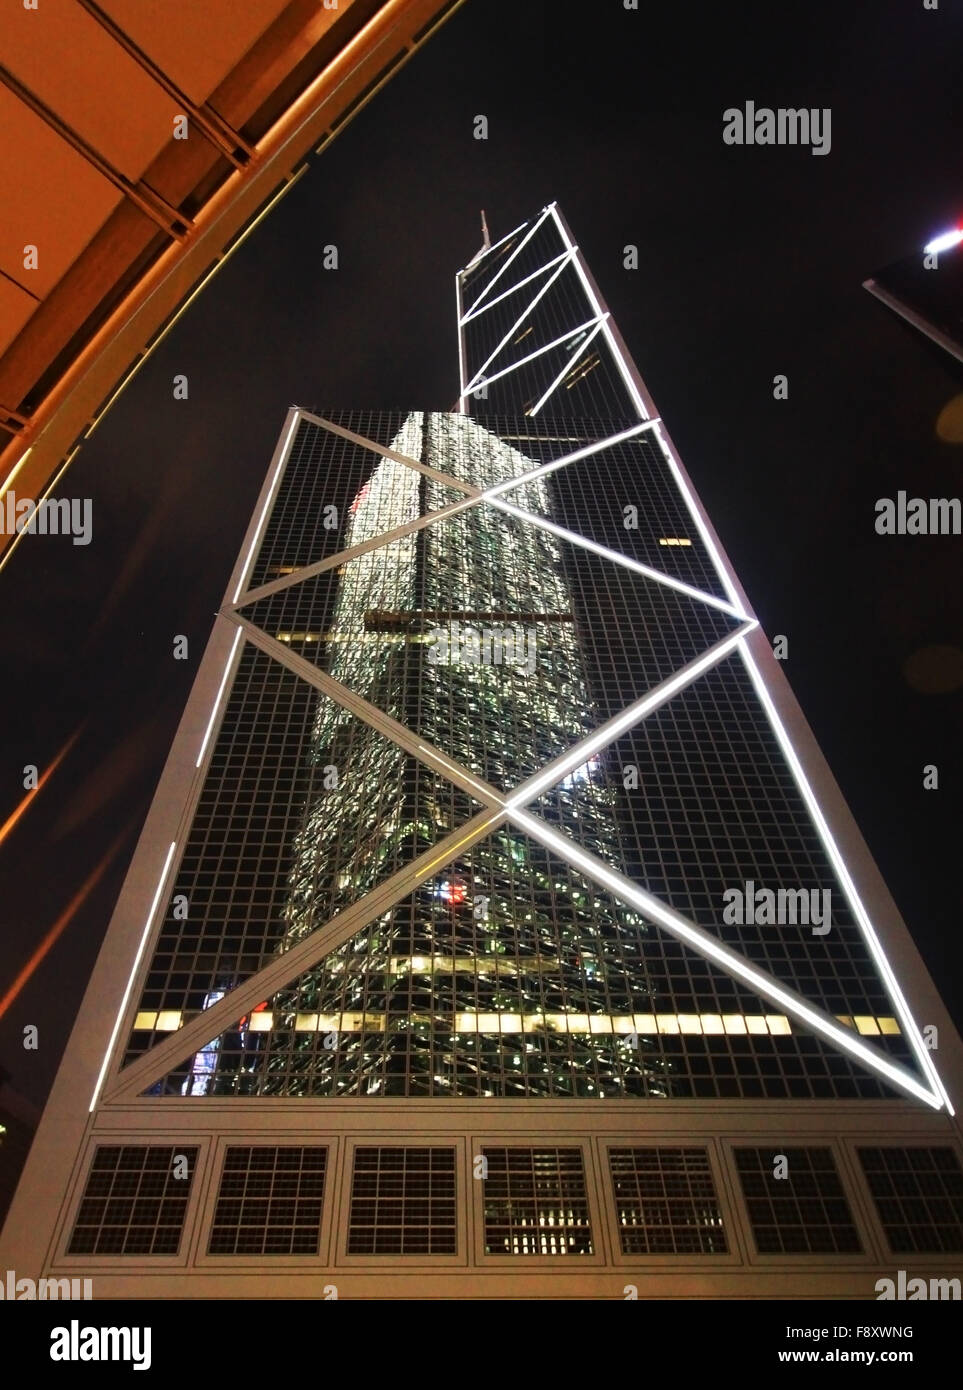 Reflection of a building on another building in Hongkong night time - Stock Image